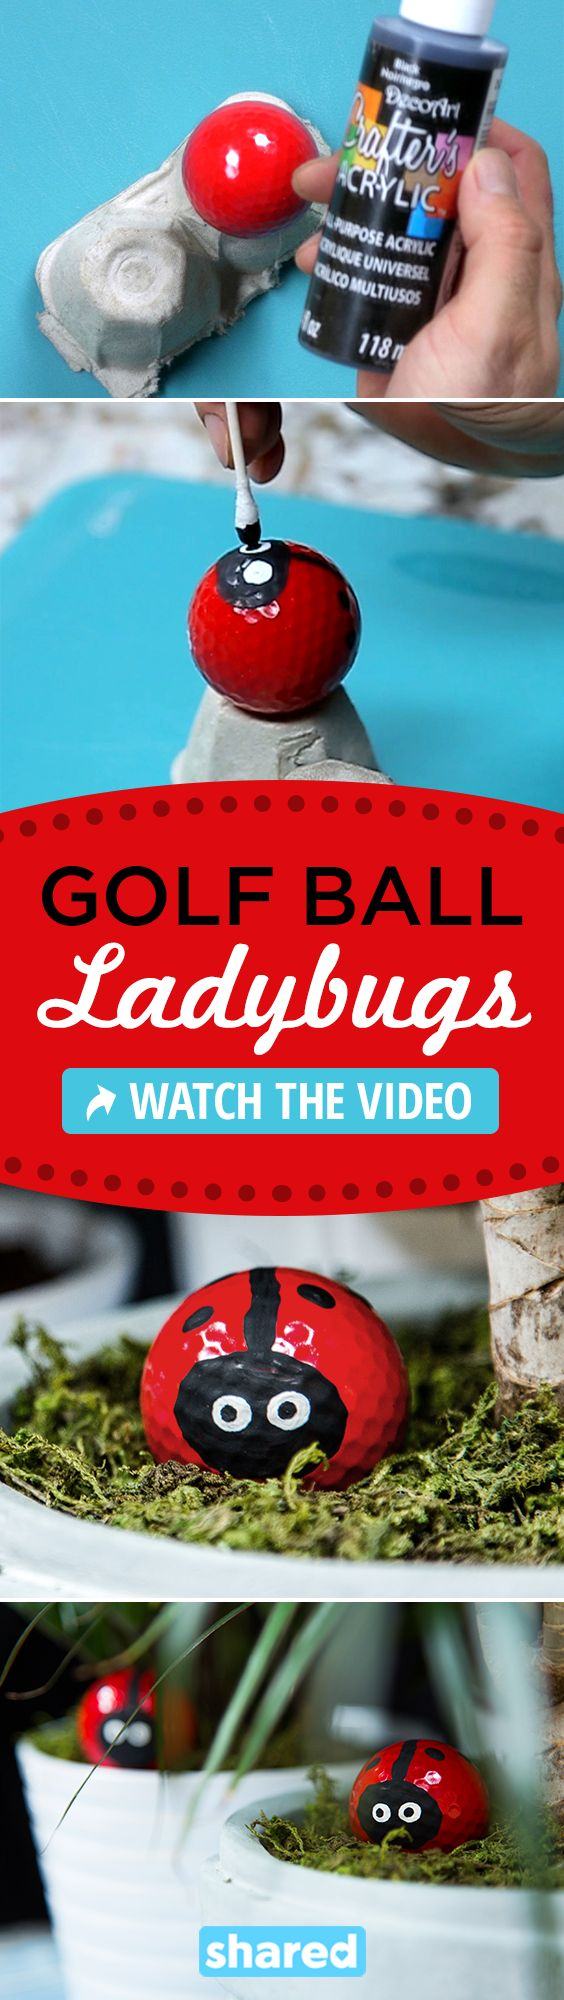 Golf Ball Ladybugs